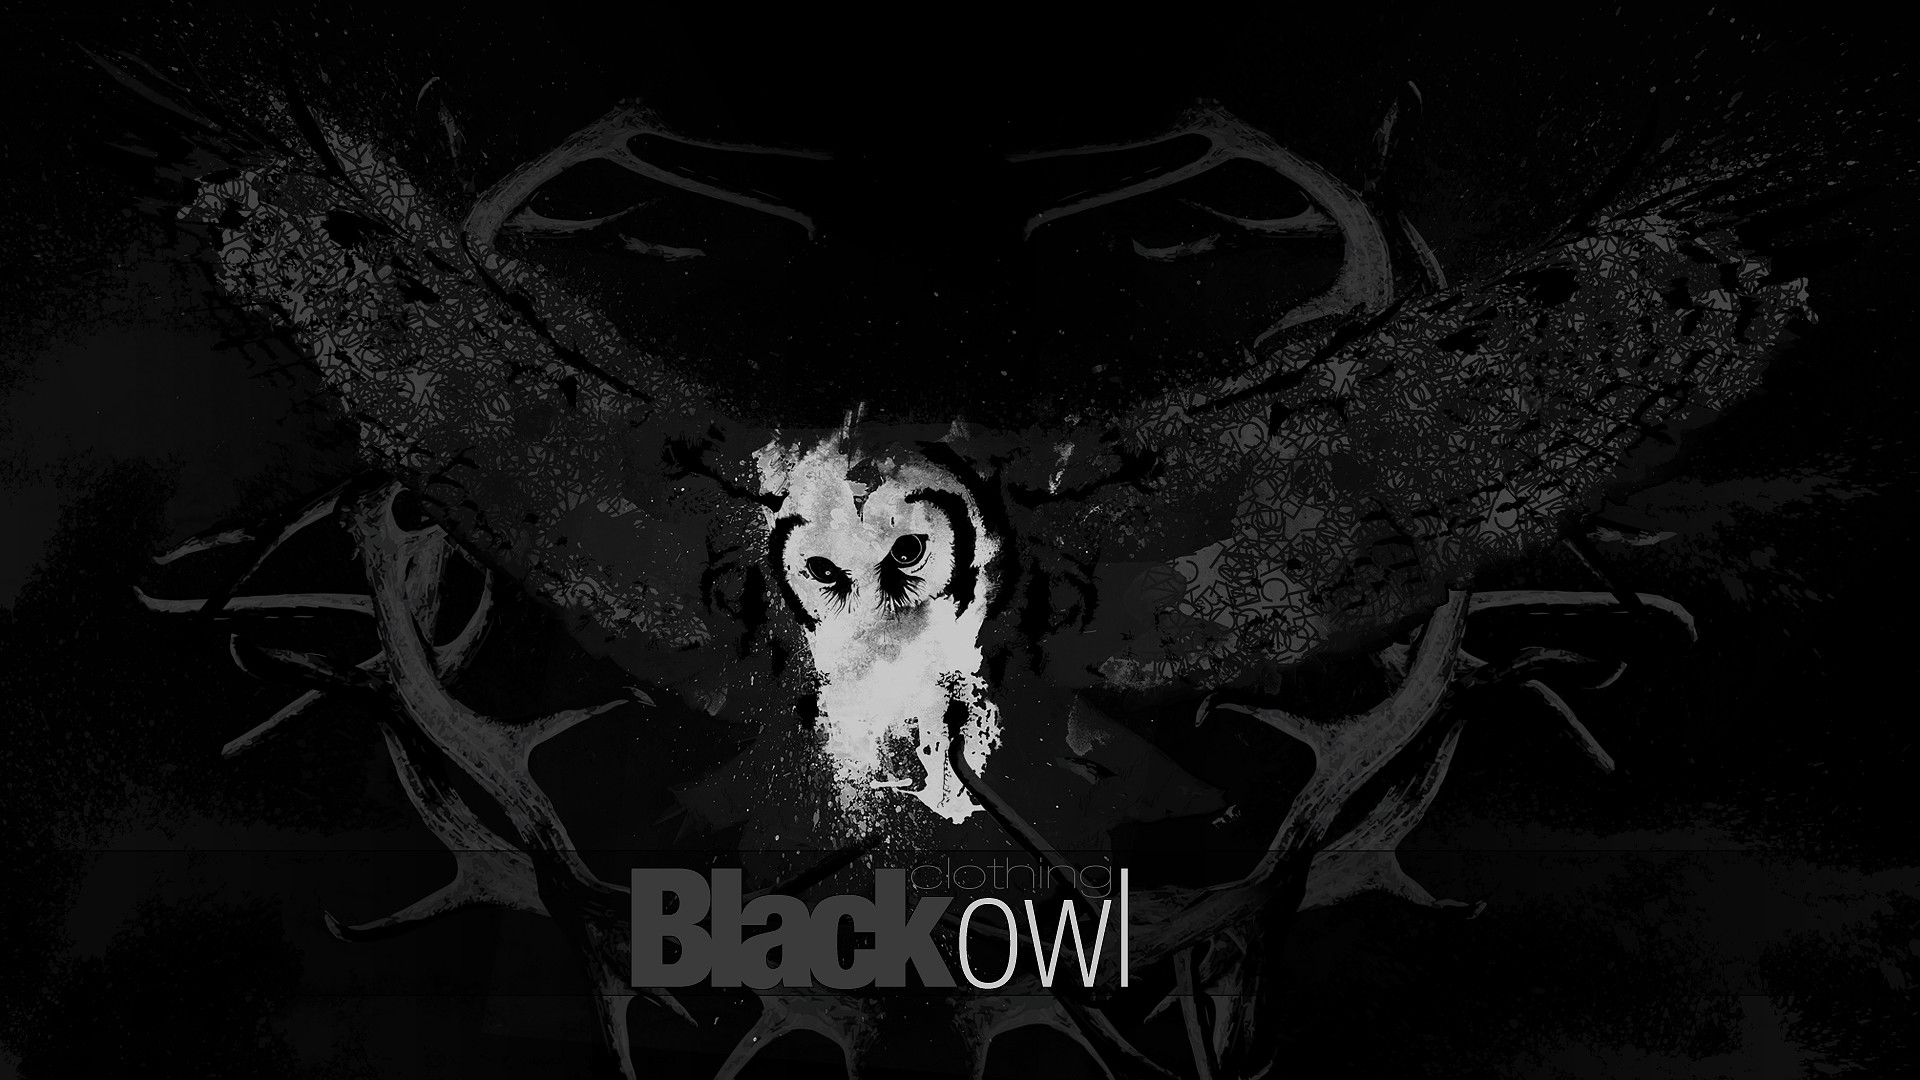 1920x1080 Black Owl wallpaper